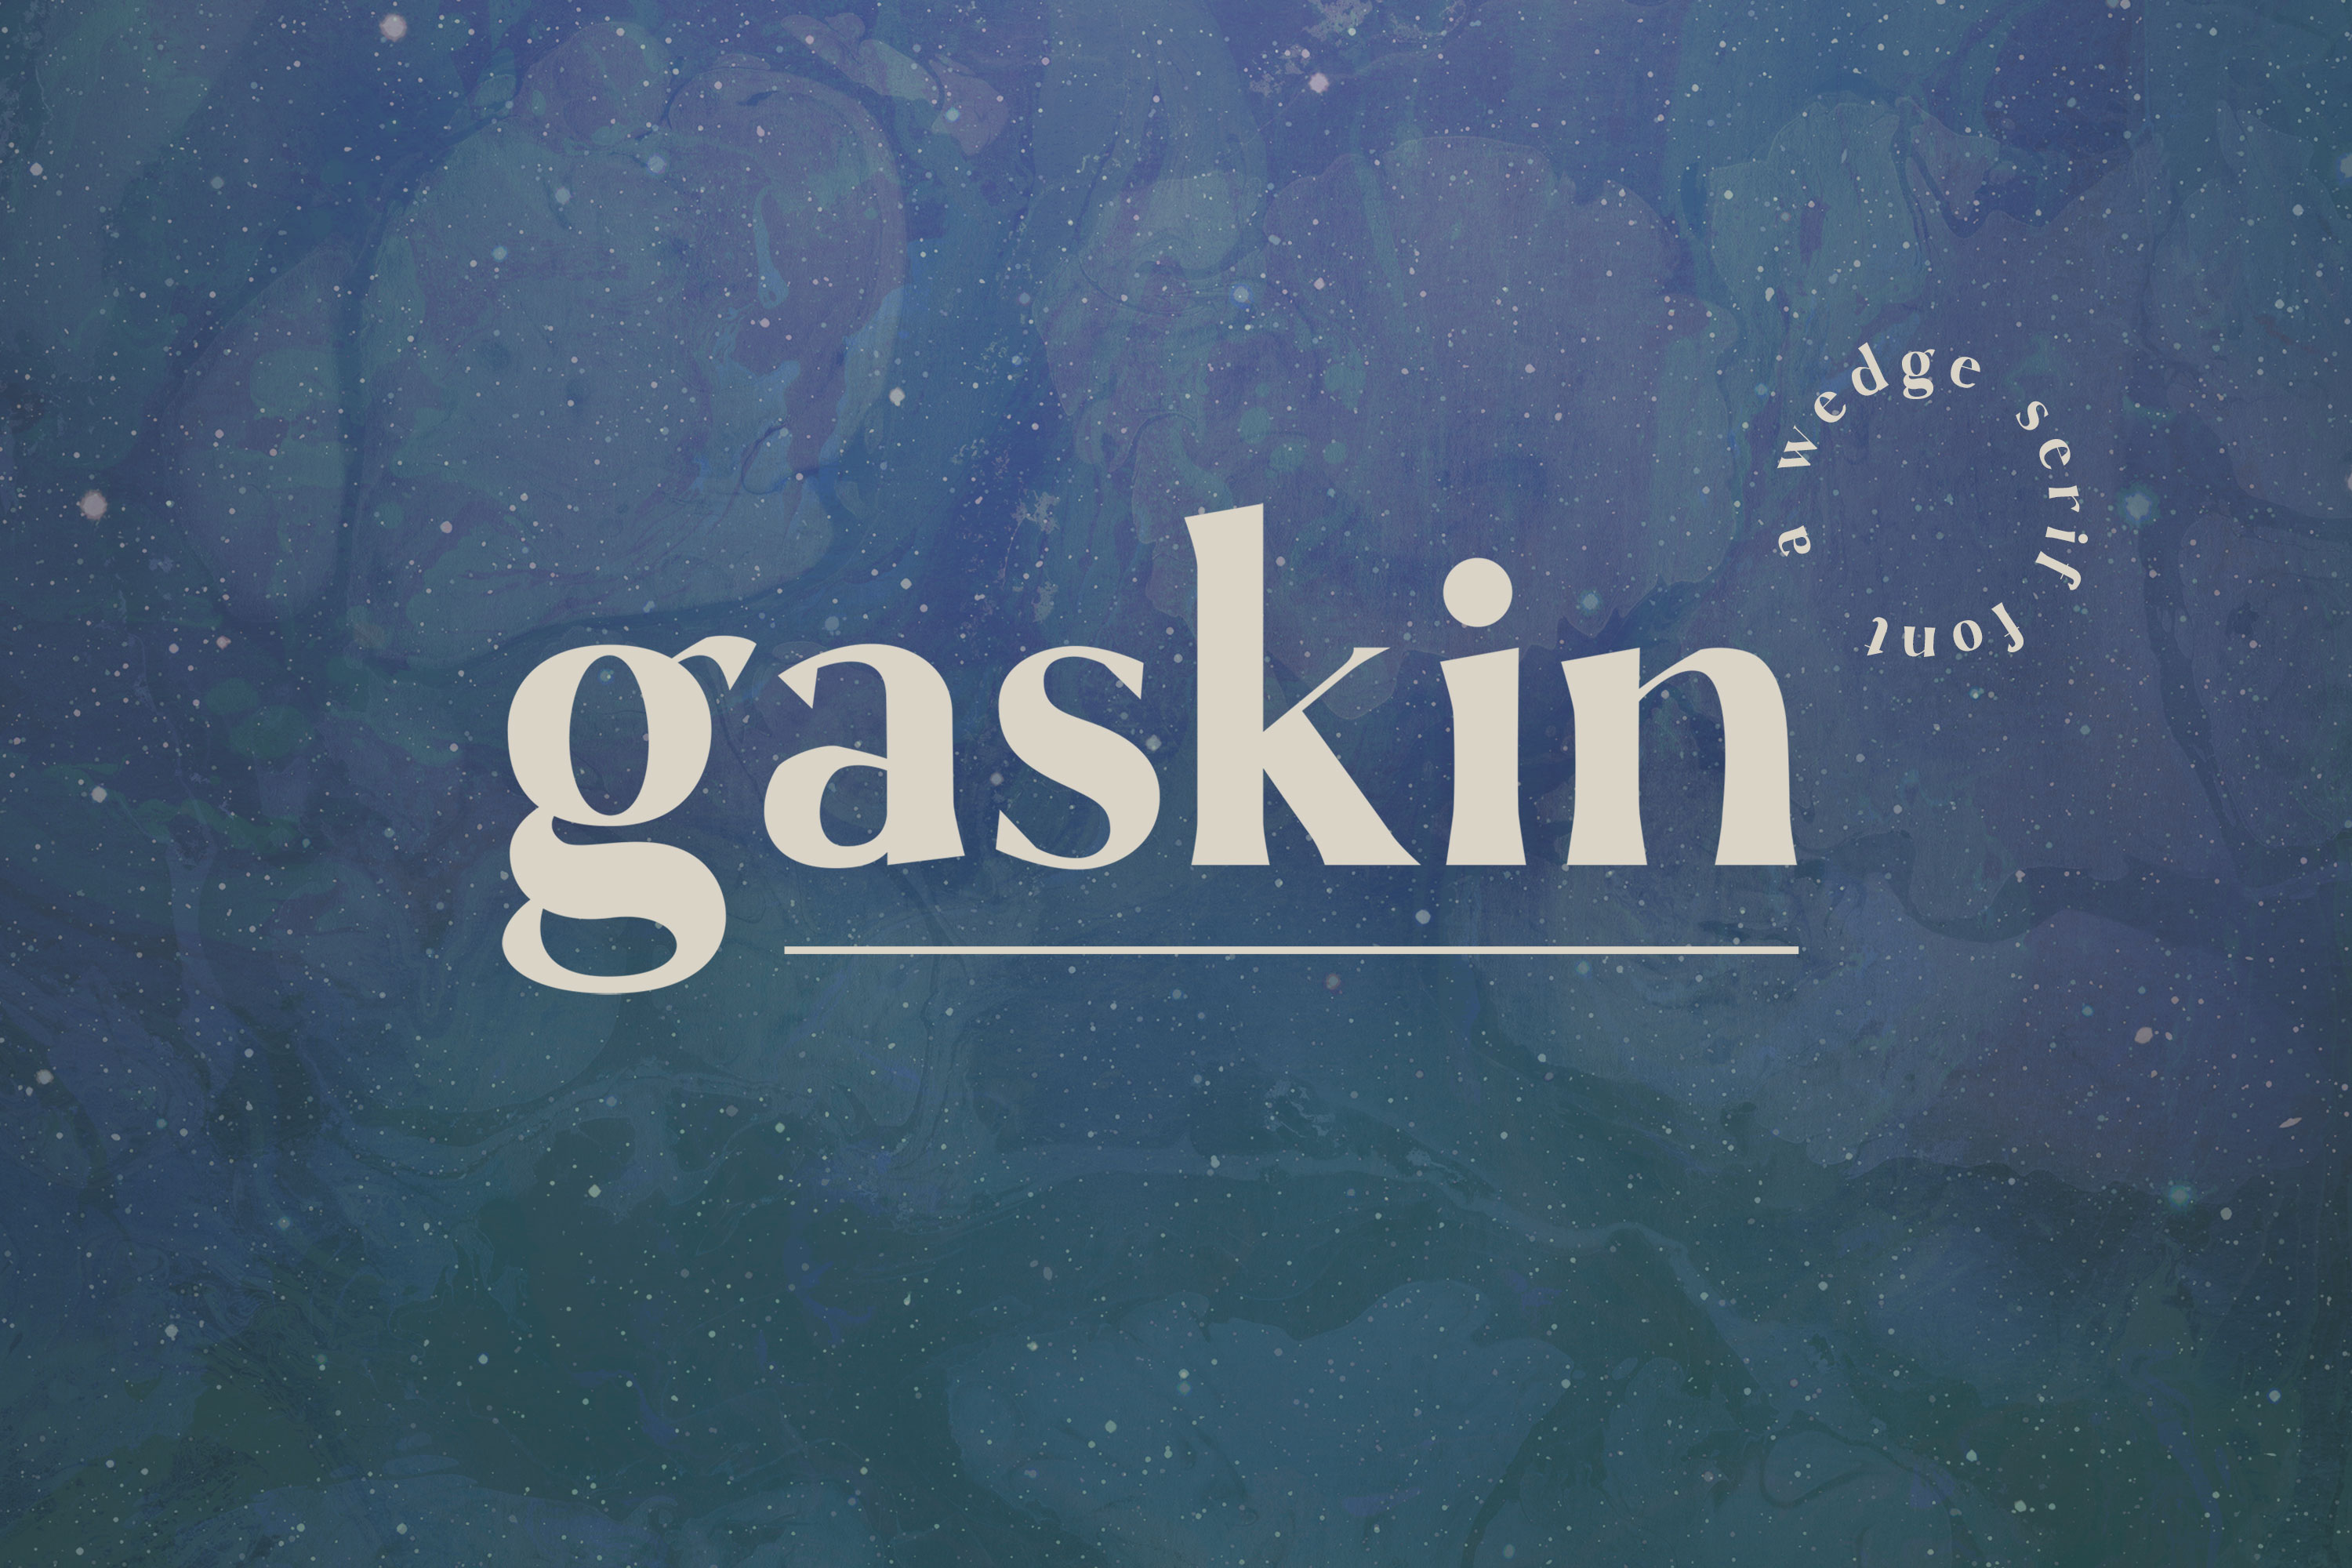 Gaskin - A Wedge Serif Font example image 1